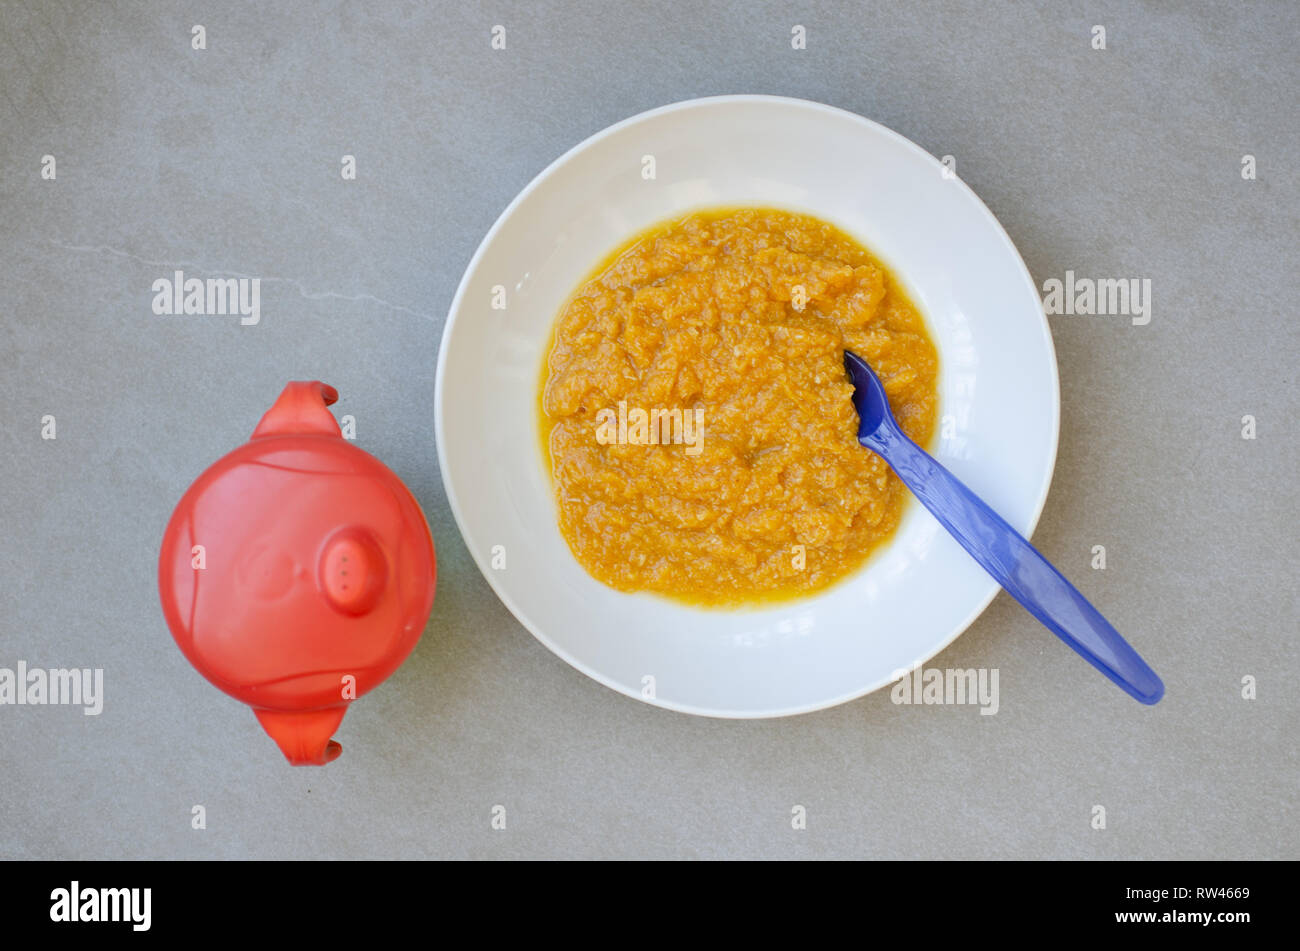 Bowl of baby food made with pureed chicken and carrot - Stock Image